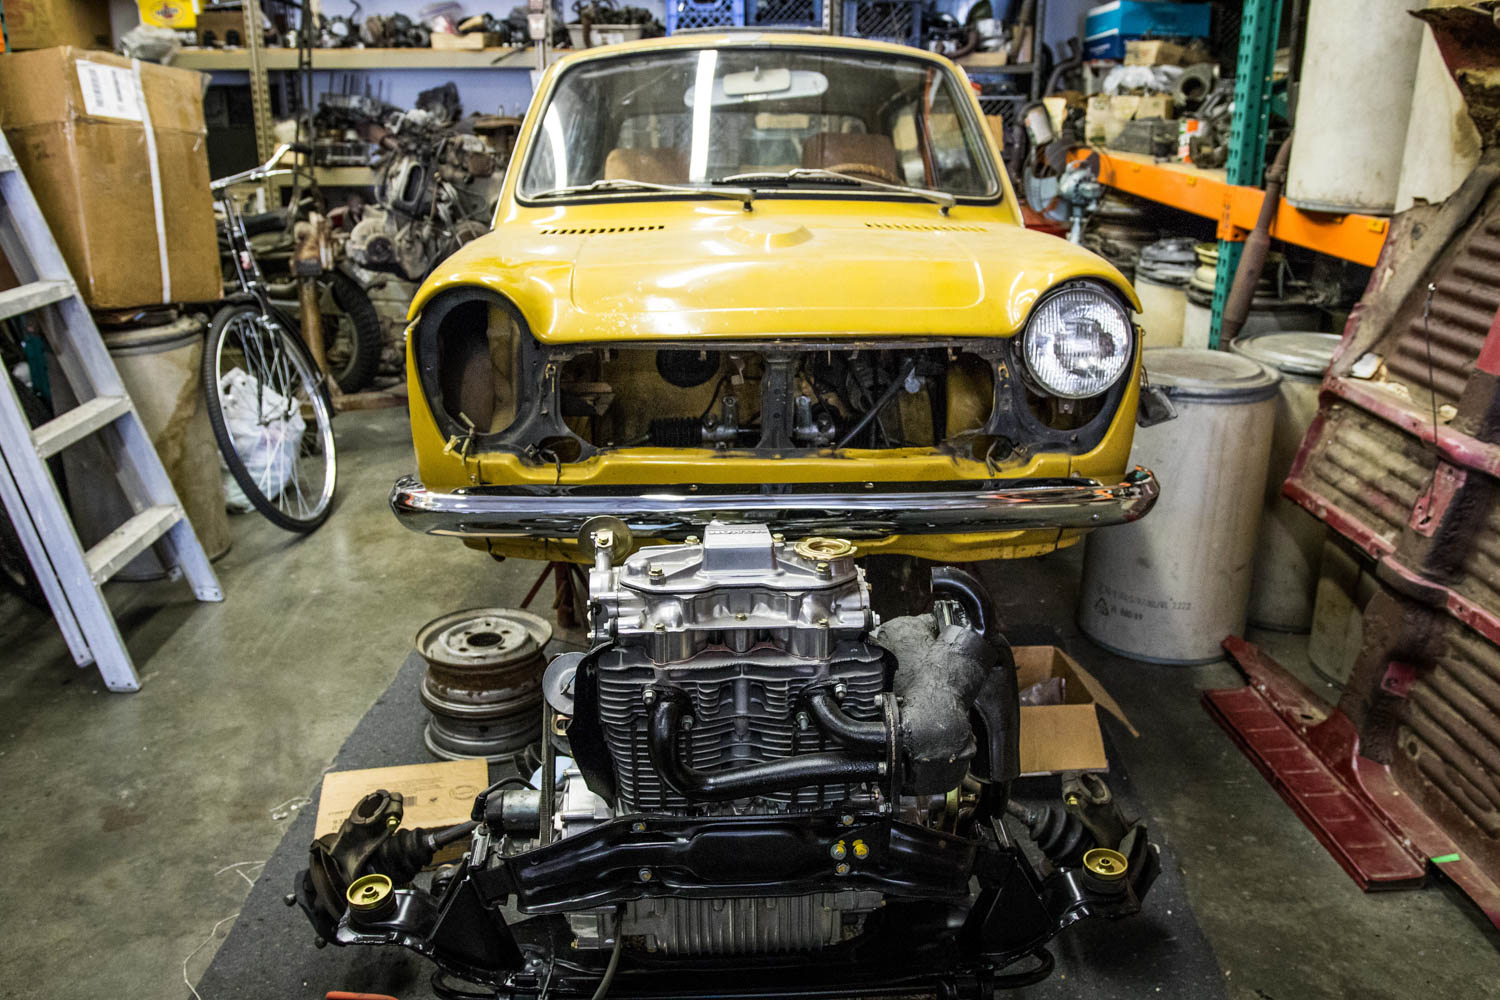 Honda N600 engine out